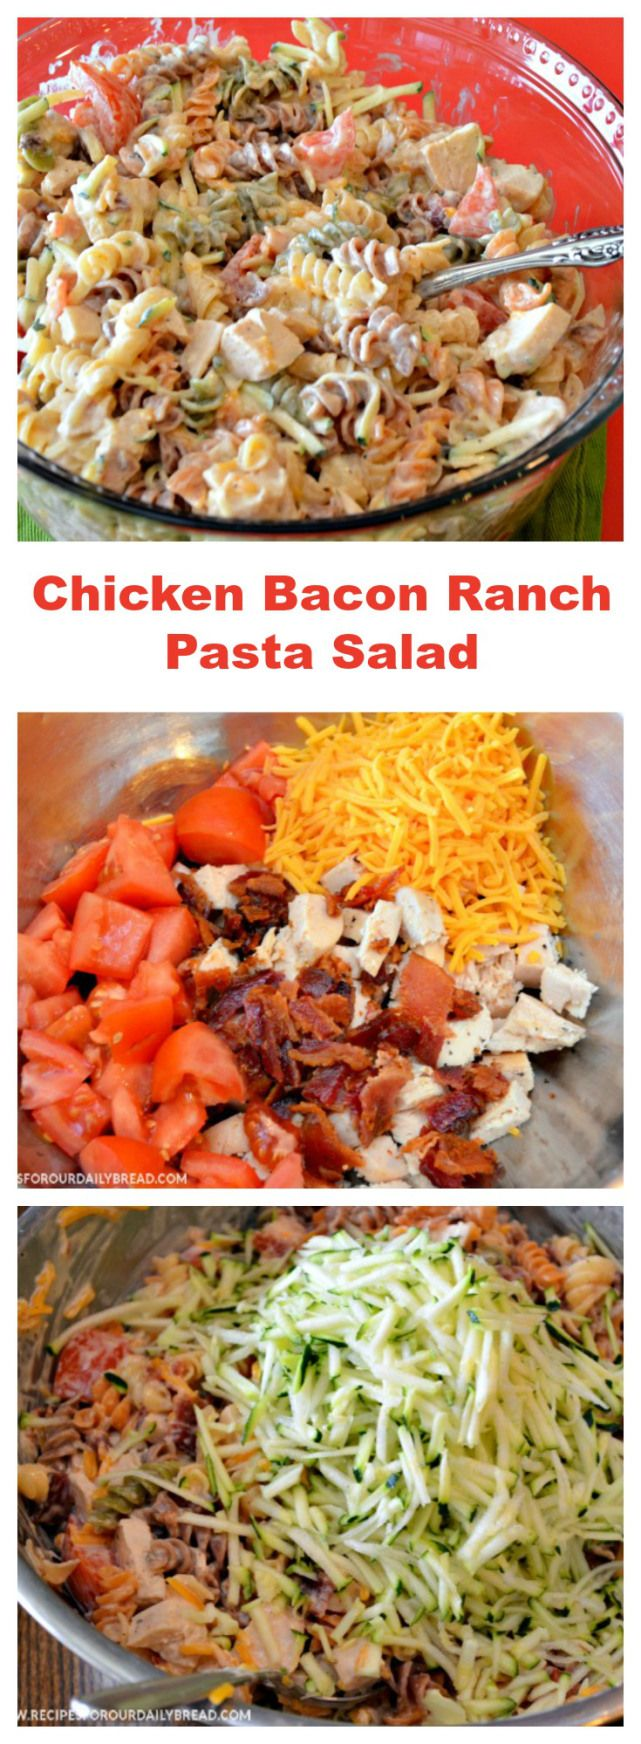 Chick bacon ranch pasta Salad Tried - really good. Think it would be excellent with avocado.